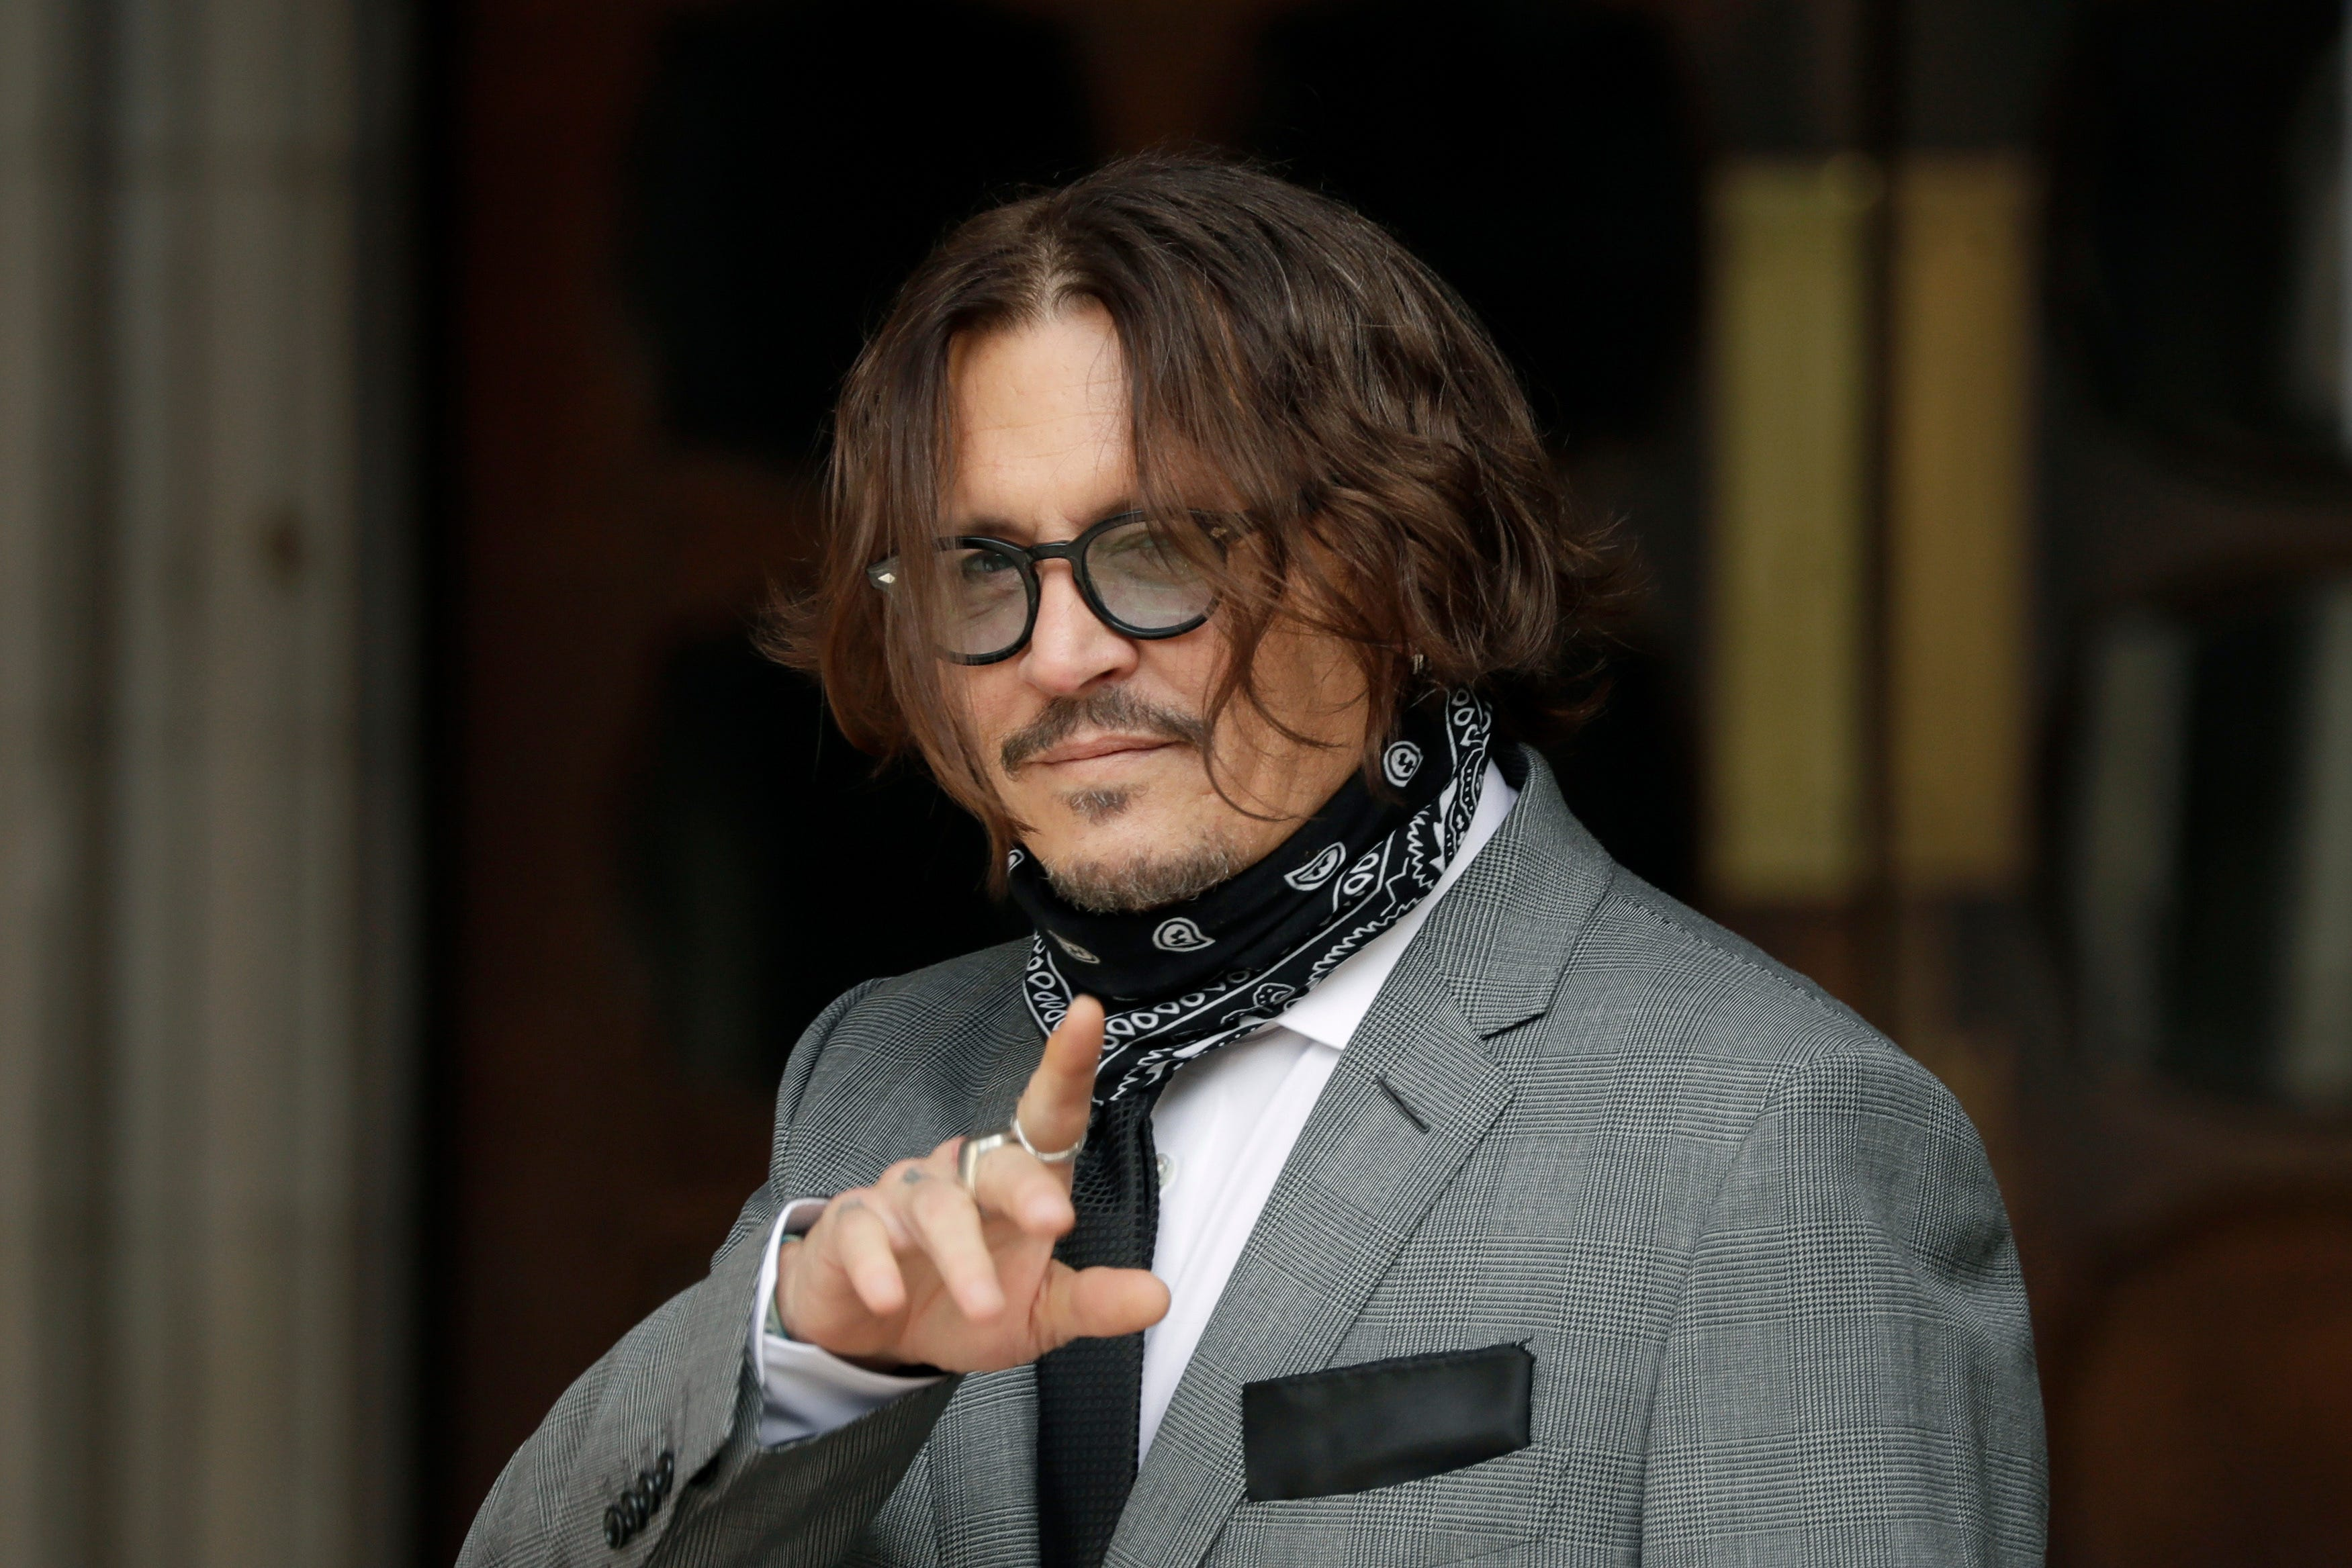 Johnny Depp in 'City of Lies' leaves critics enlightened and confused